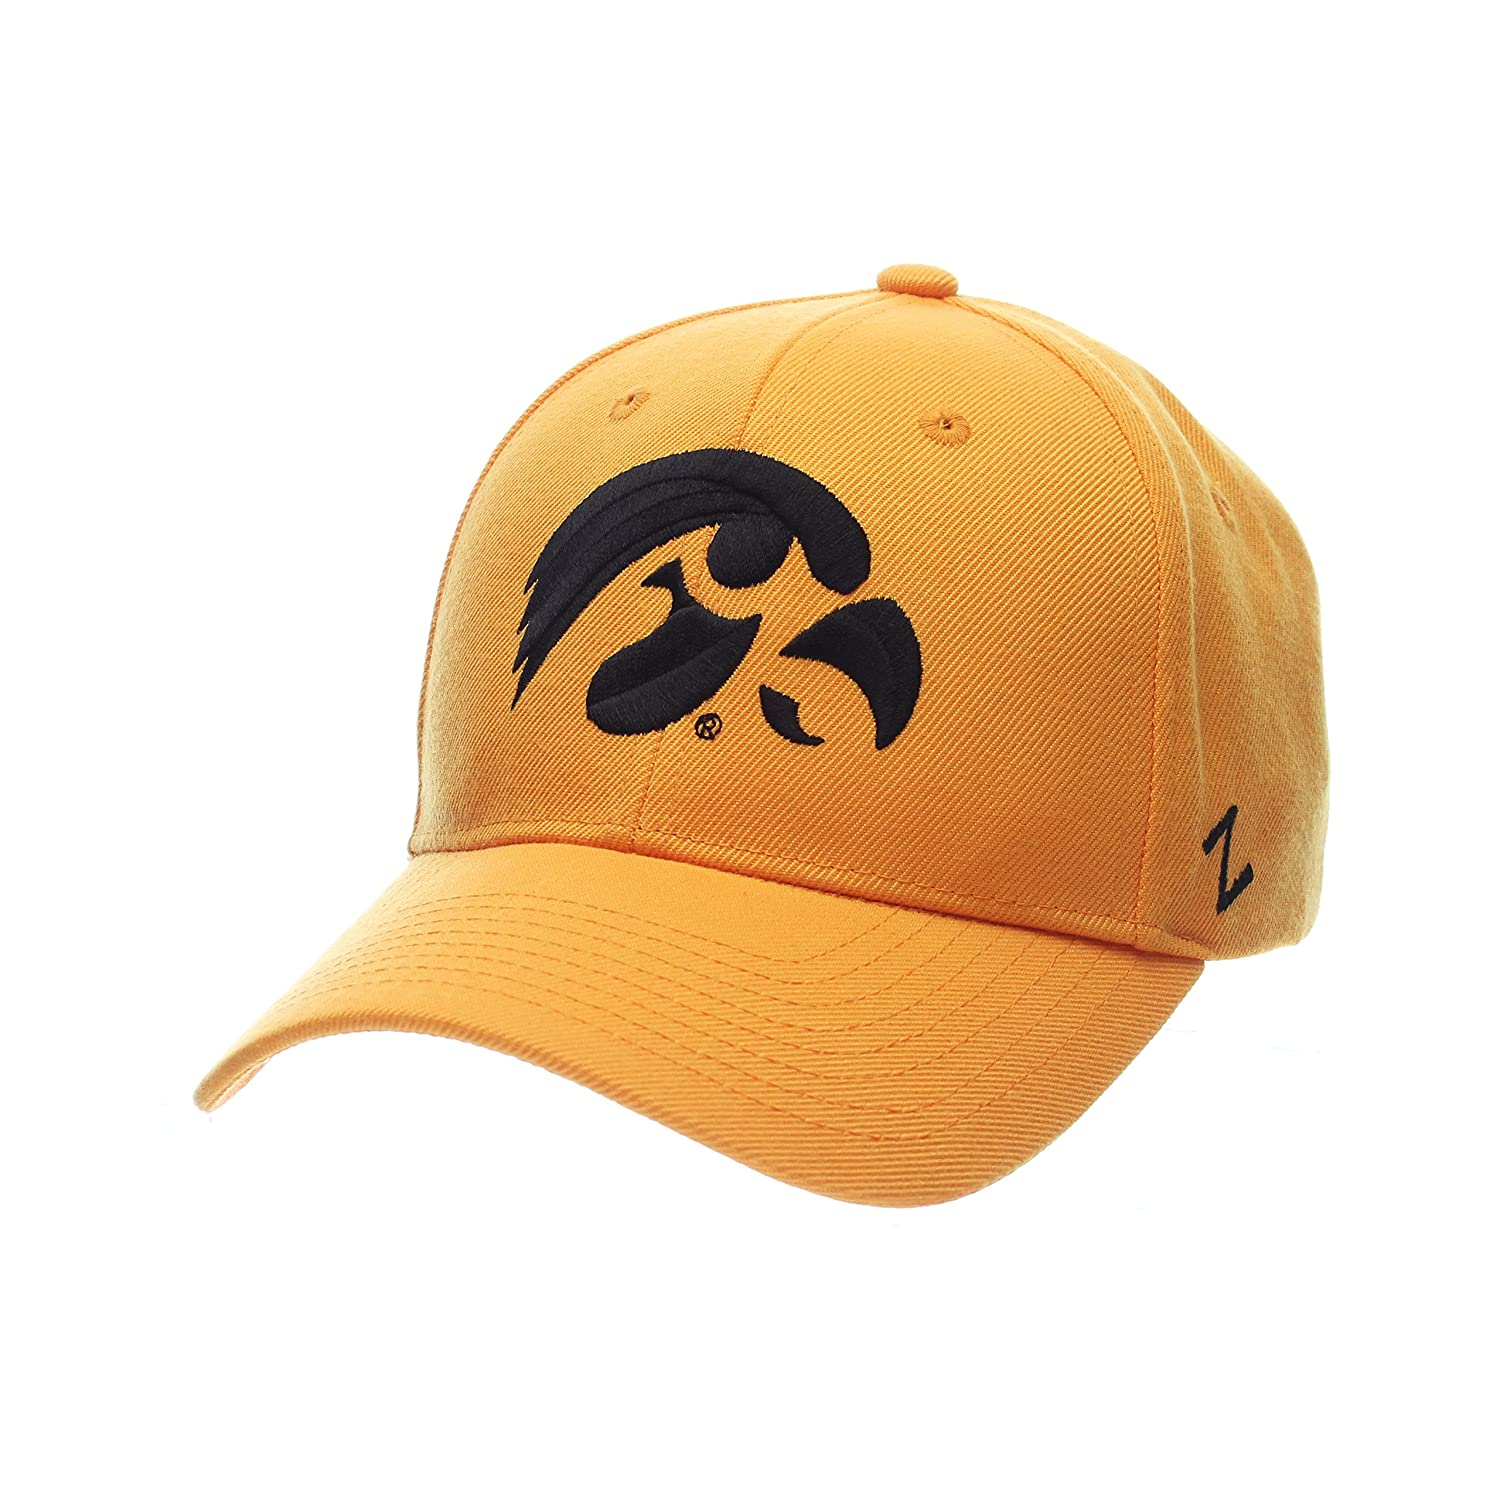 NCAA One Size Adjustable Baseball Hat Zephyr Staple Relaxed Fit Dad Cap